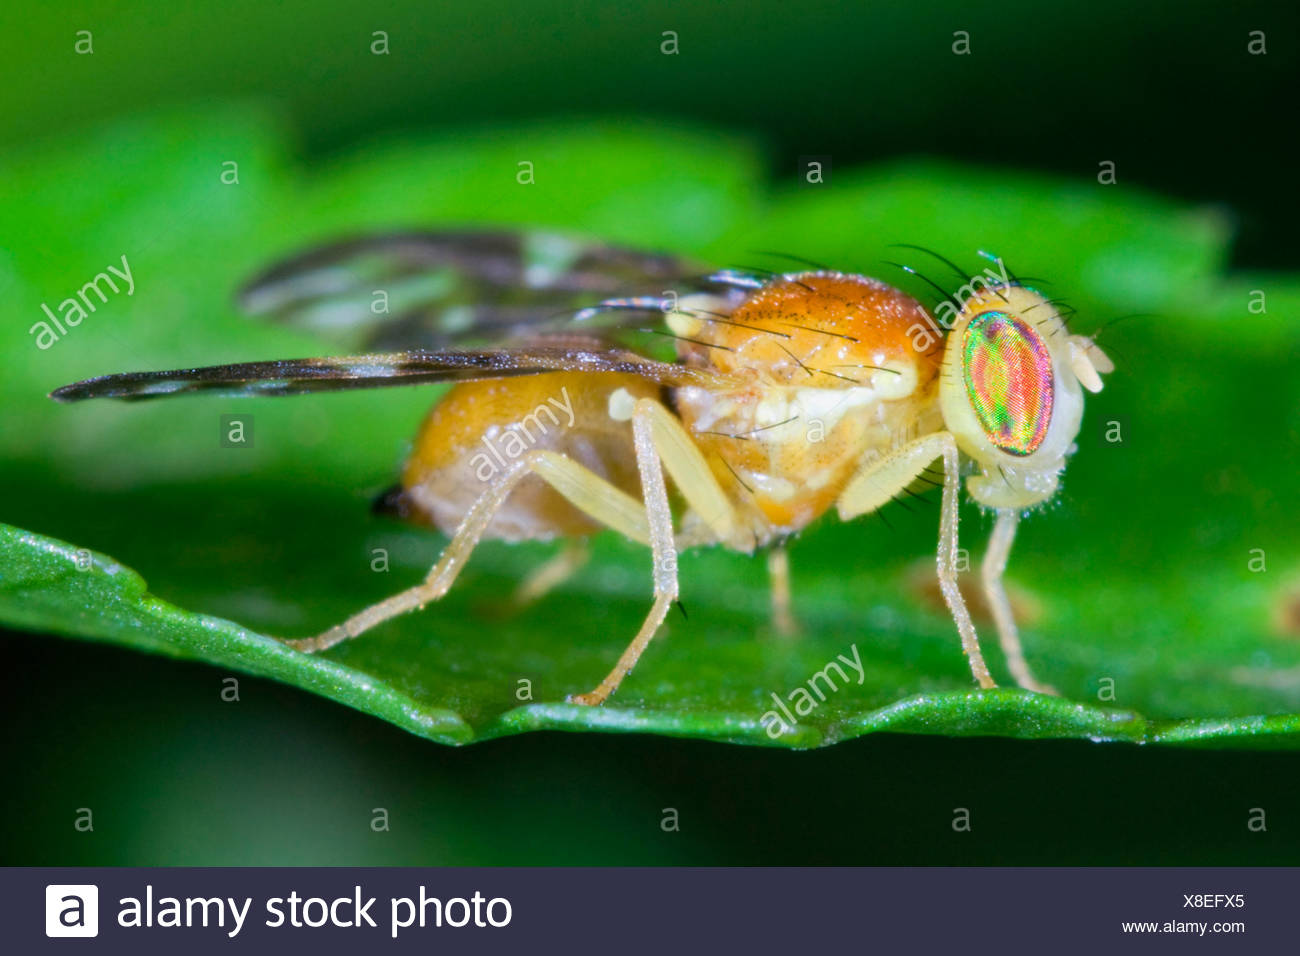 Compound Eye Of Fruit Fly Stock Photos & Compound Eye Of Fruit Fly ...